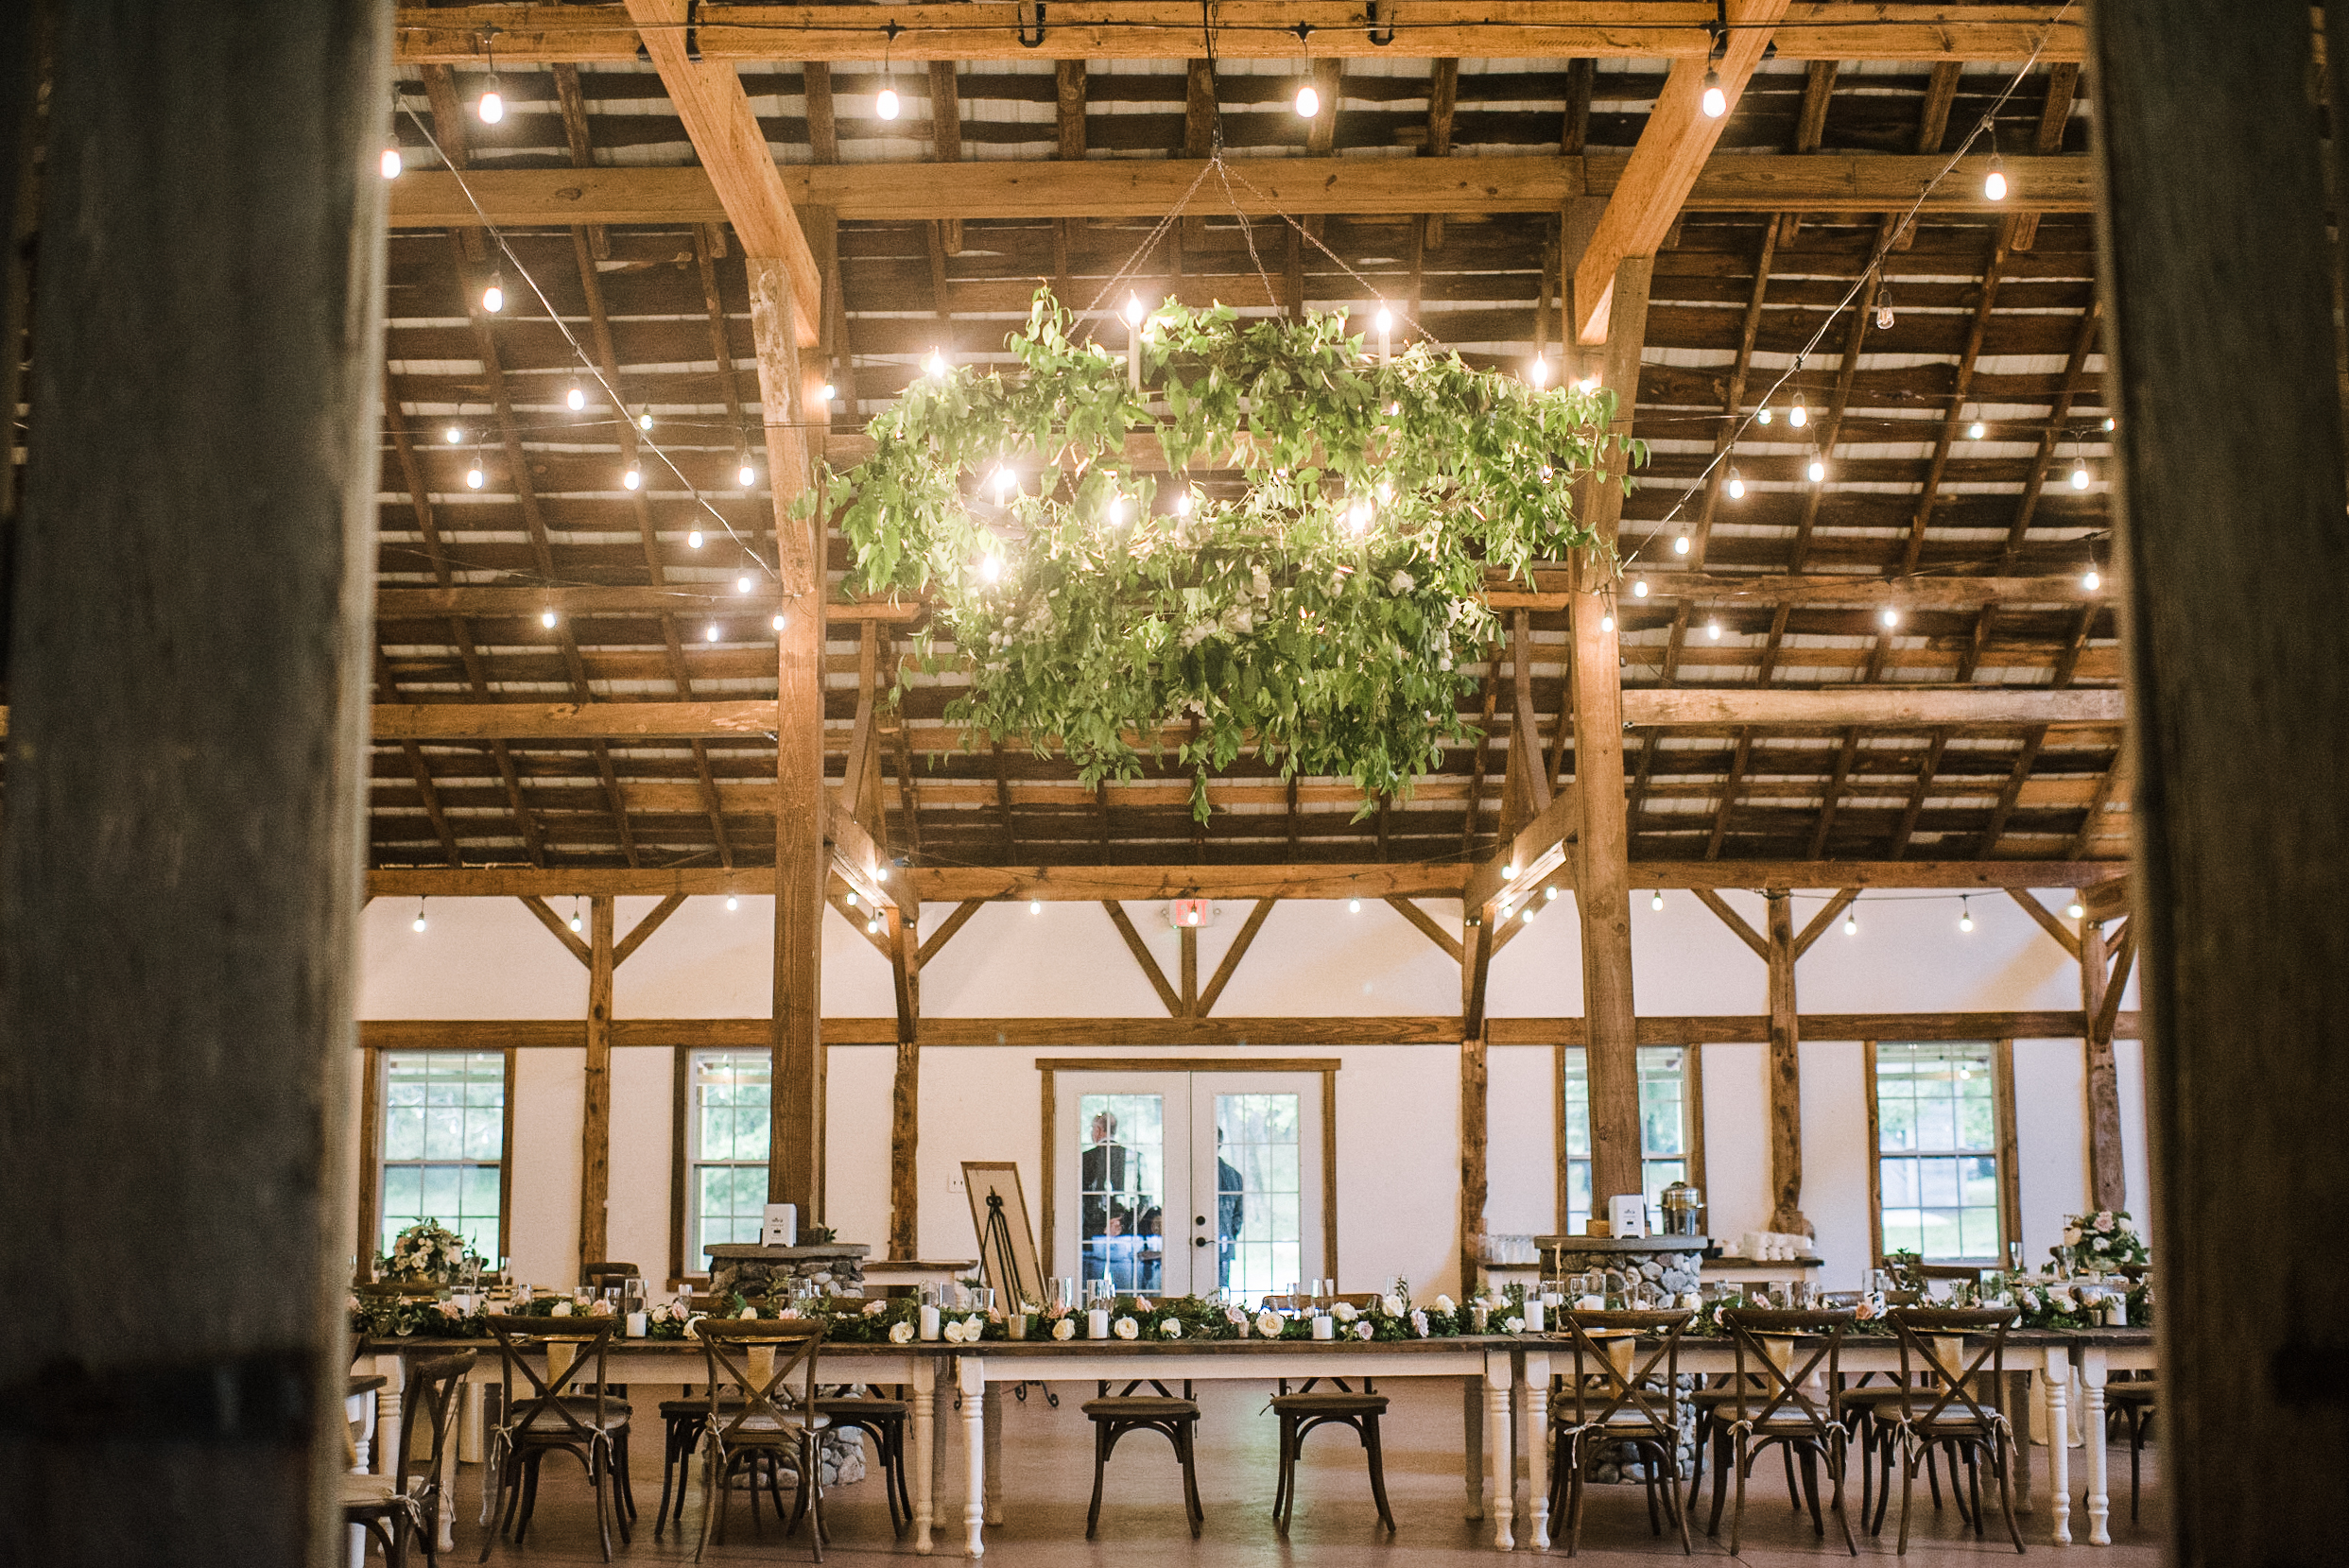 Reception in the stable… - Sarah & Andrew's vision for their reception was such a joy for us to help bring to life! We loved creating this chandelier with draping greenery above the kings table.